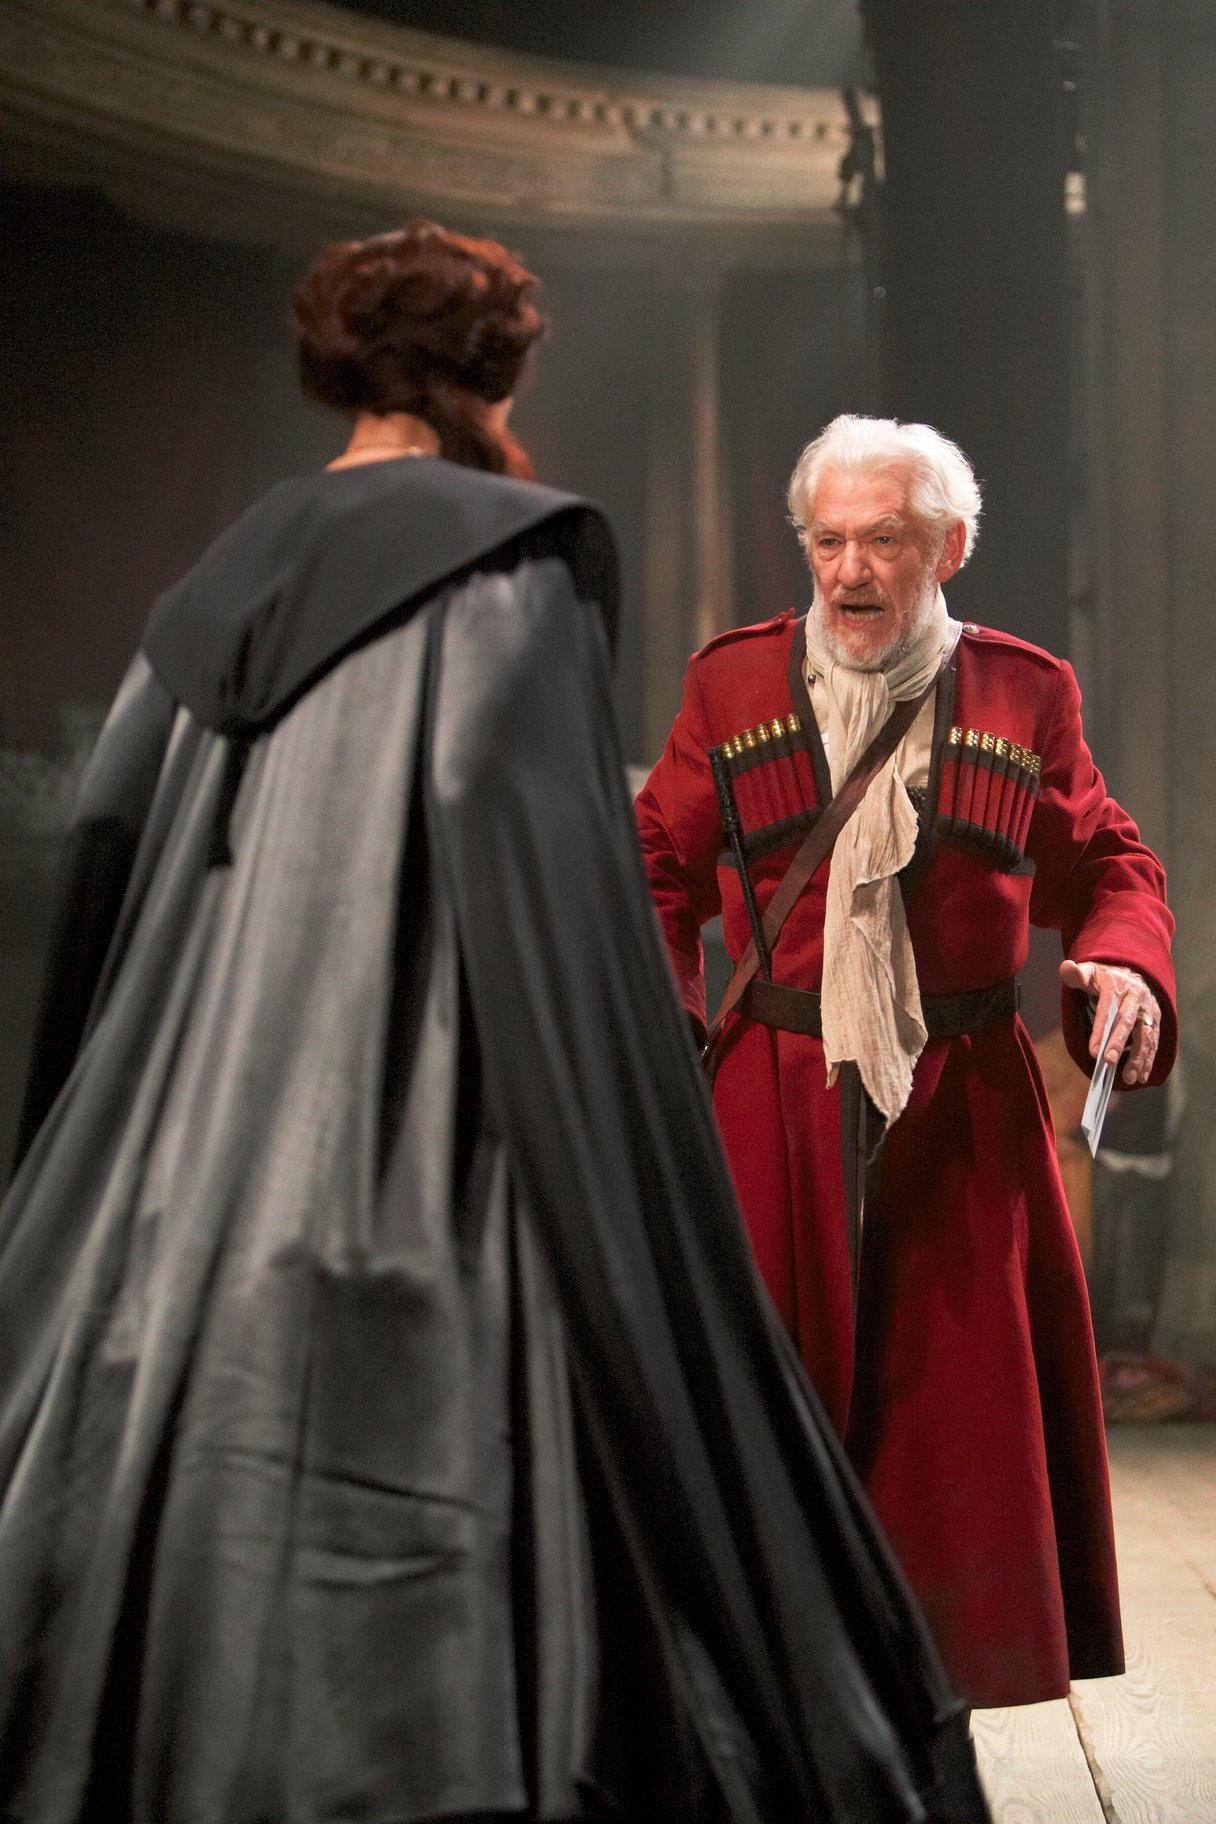 A man in a red greatcoat talks angrily to a woman in a long robe who stands with her back to camera.